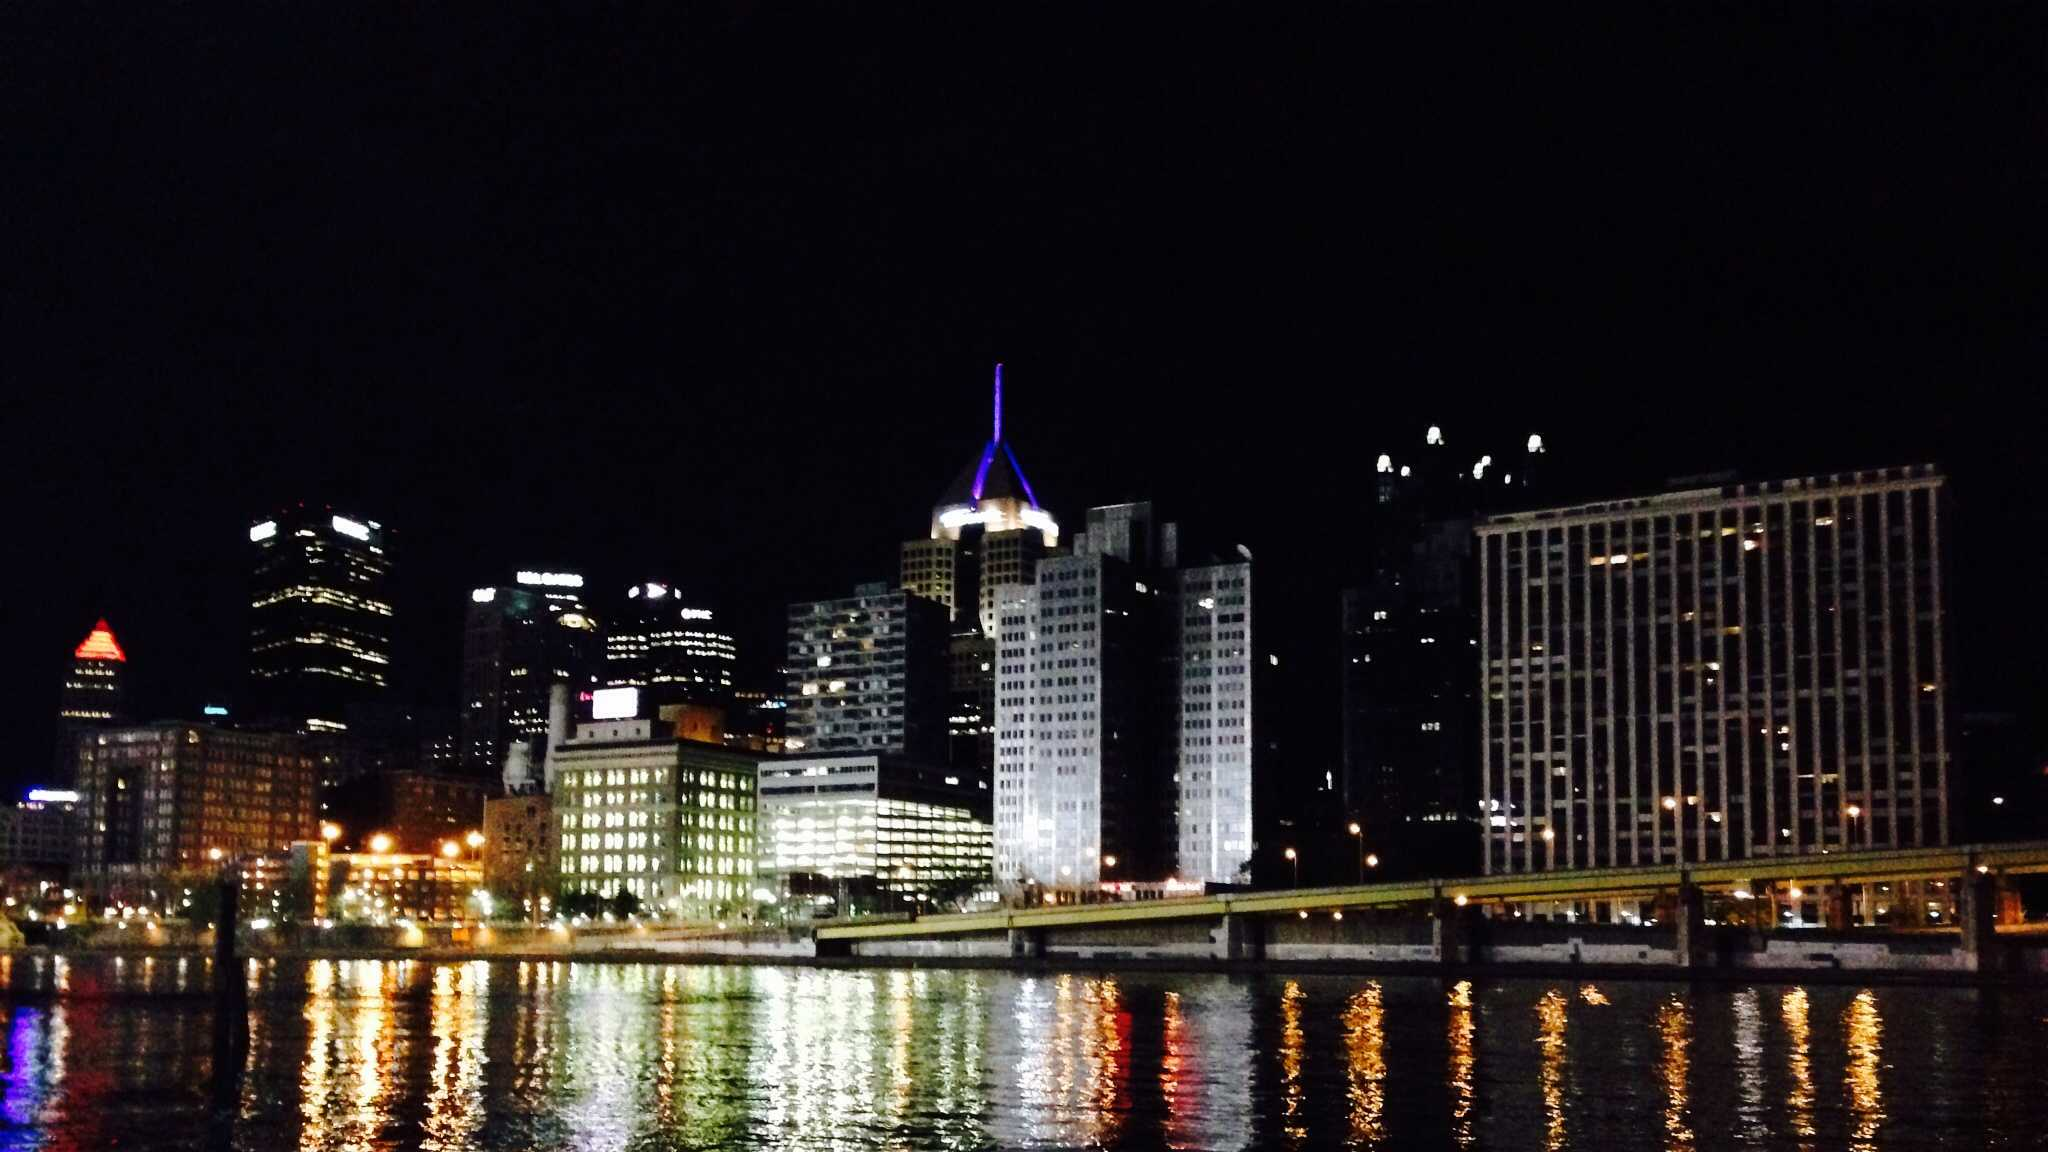 A view of the downtown skyline at night.